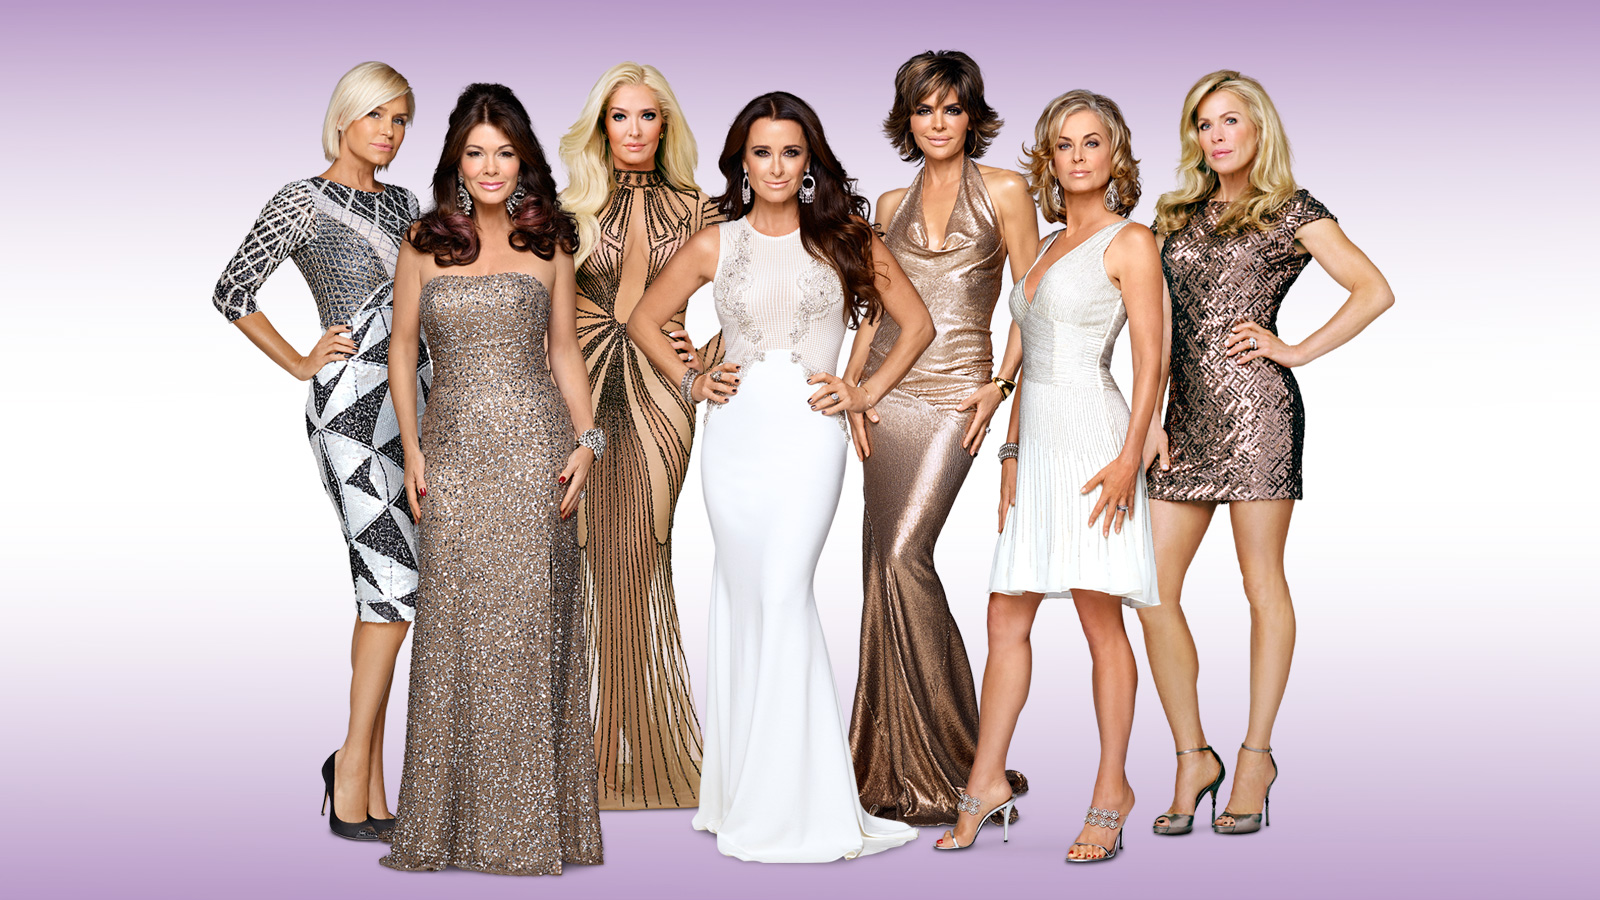 the real housewives of vancouver season 1 episode 12